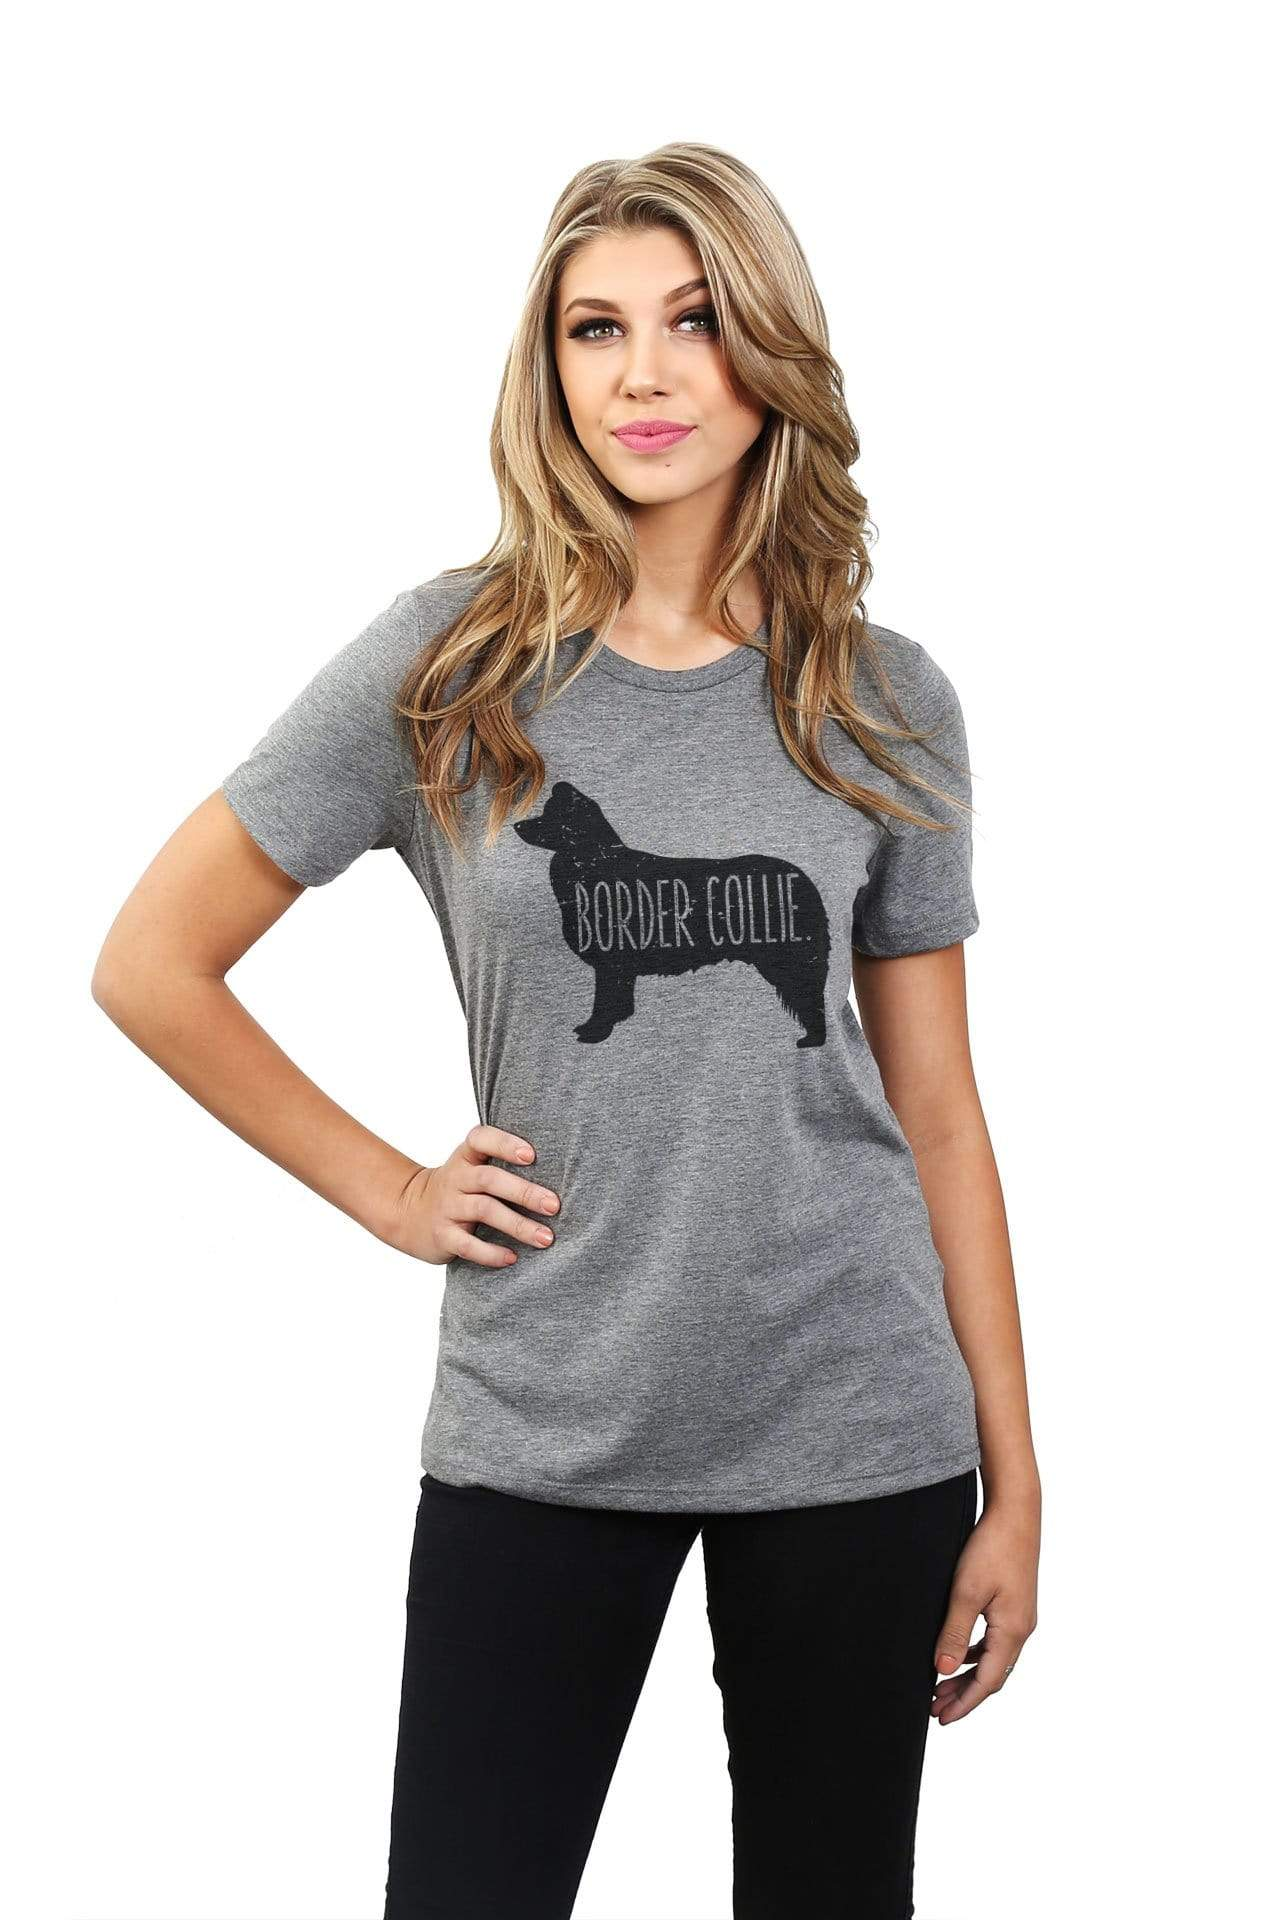 Border Collie Dog Silhouette Graphic Women's Heather Grey Relaxed Crew T-Shirt Tee Top